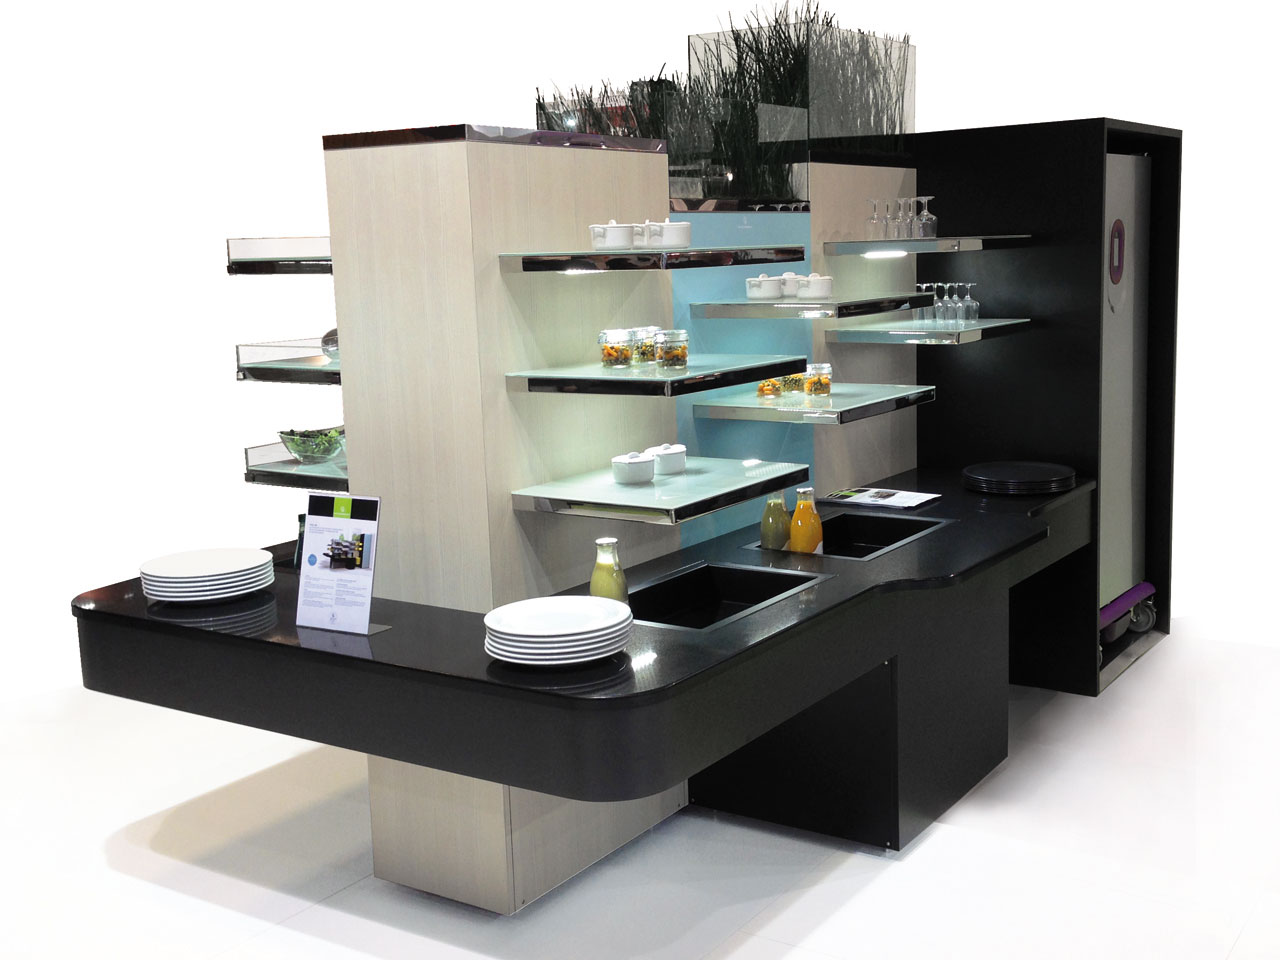 Cantina Design Amenagement Cantine Design C 43b Lefebvre